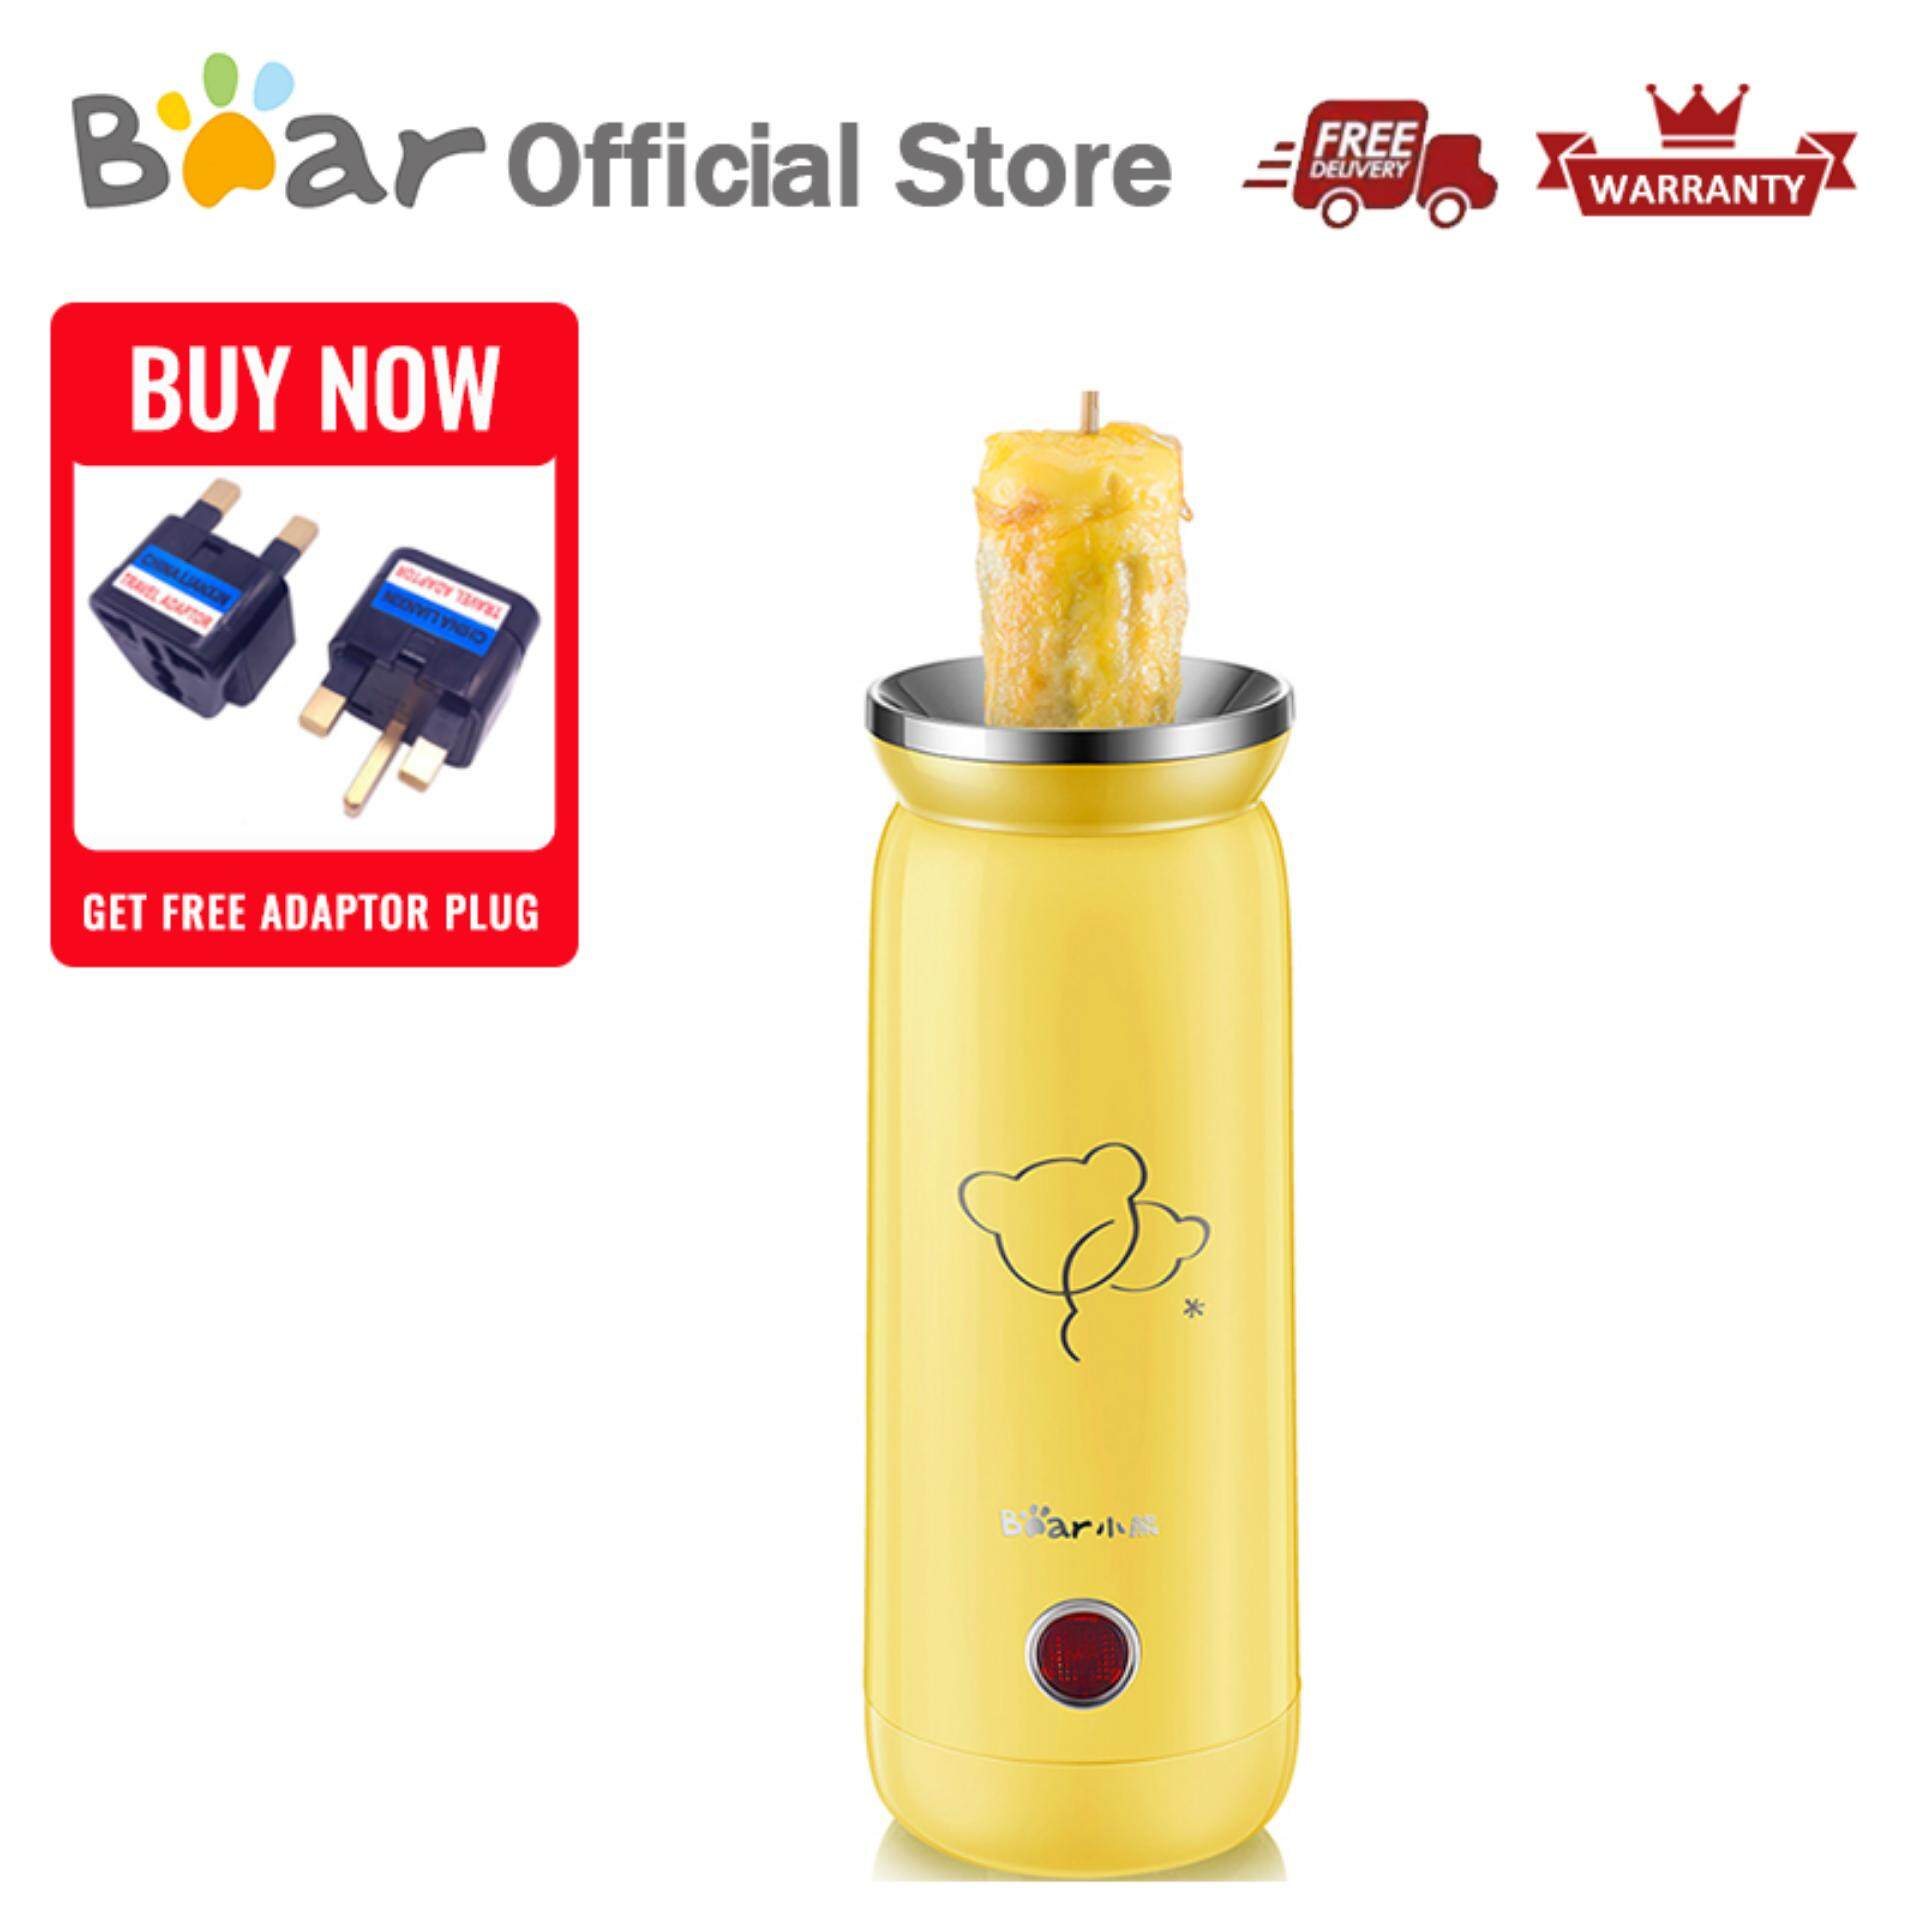 Bear Electric Egg Roll Maker JDQ-B01G2 Egg Boiler Omelette Sausage Machine